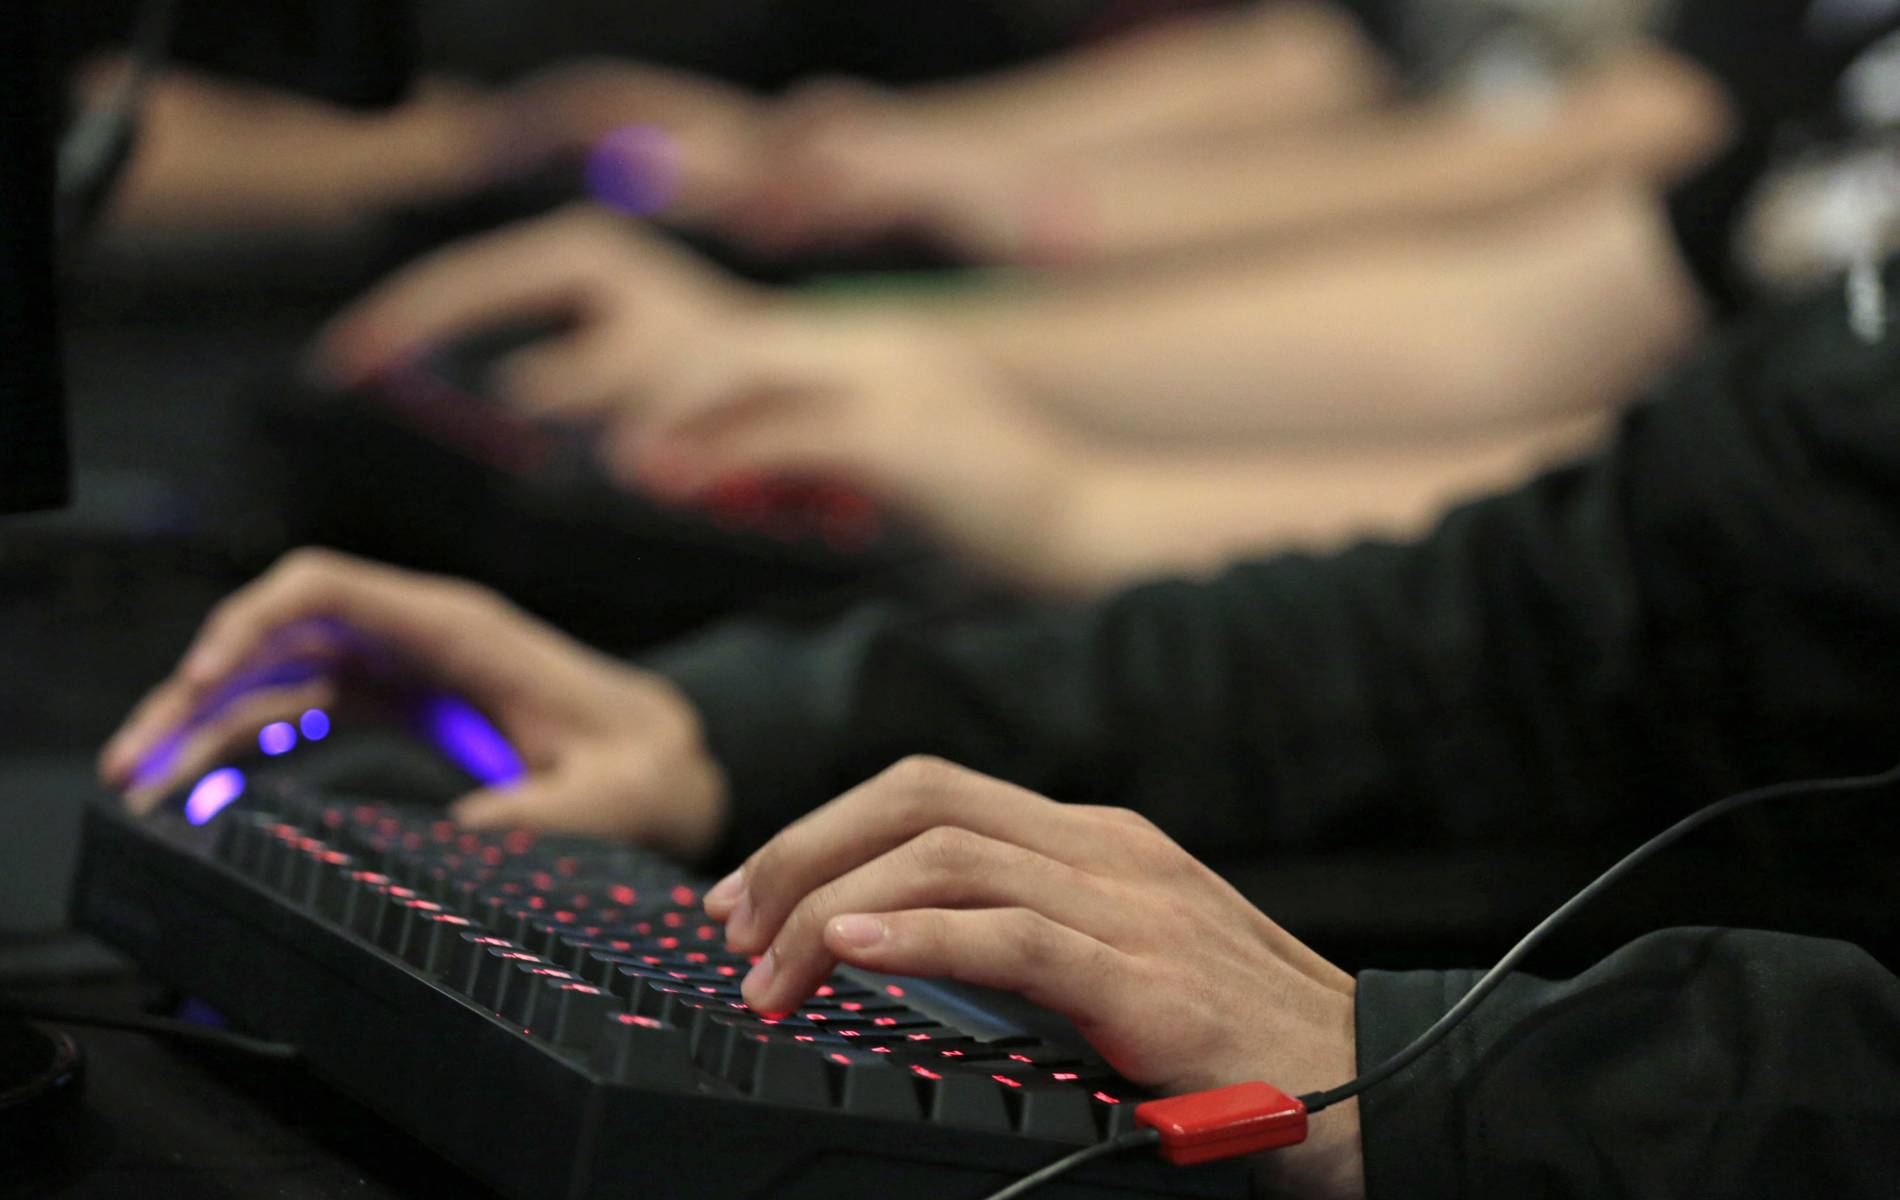 computer game addiction essay Computer game addiction develops in much the same way as any other kind of addiction an addiction to computer games will cause you to neglect important aspects of your life nowadays, most everyone knows someone who loves to play computer games, whether online or offline.